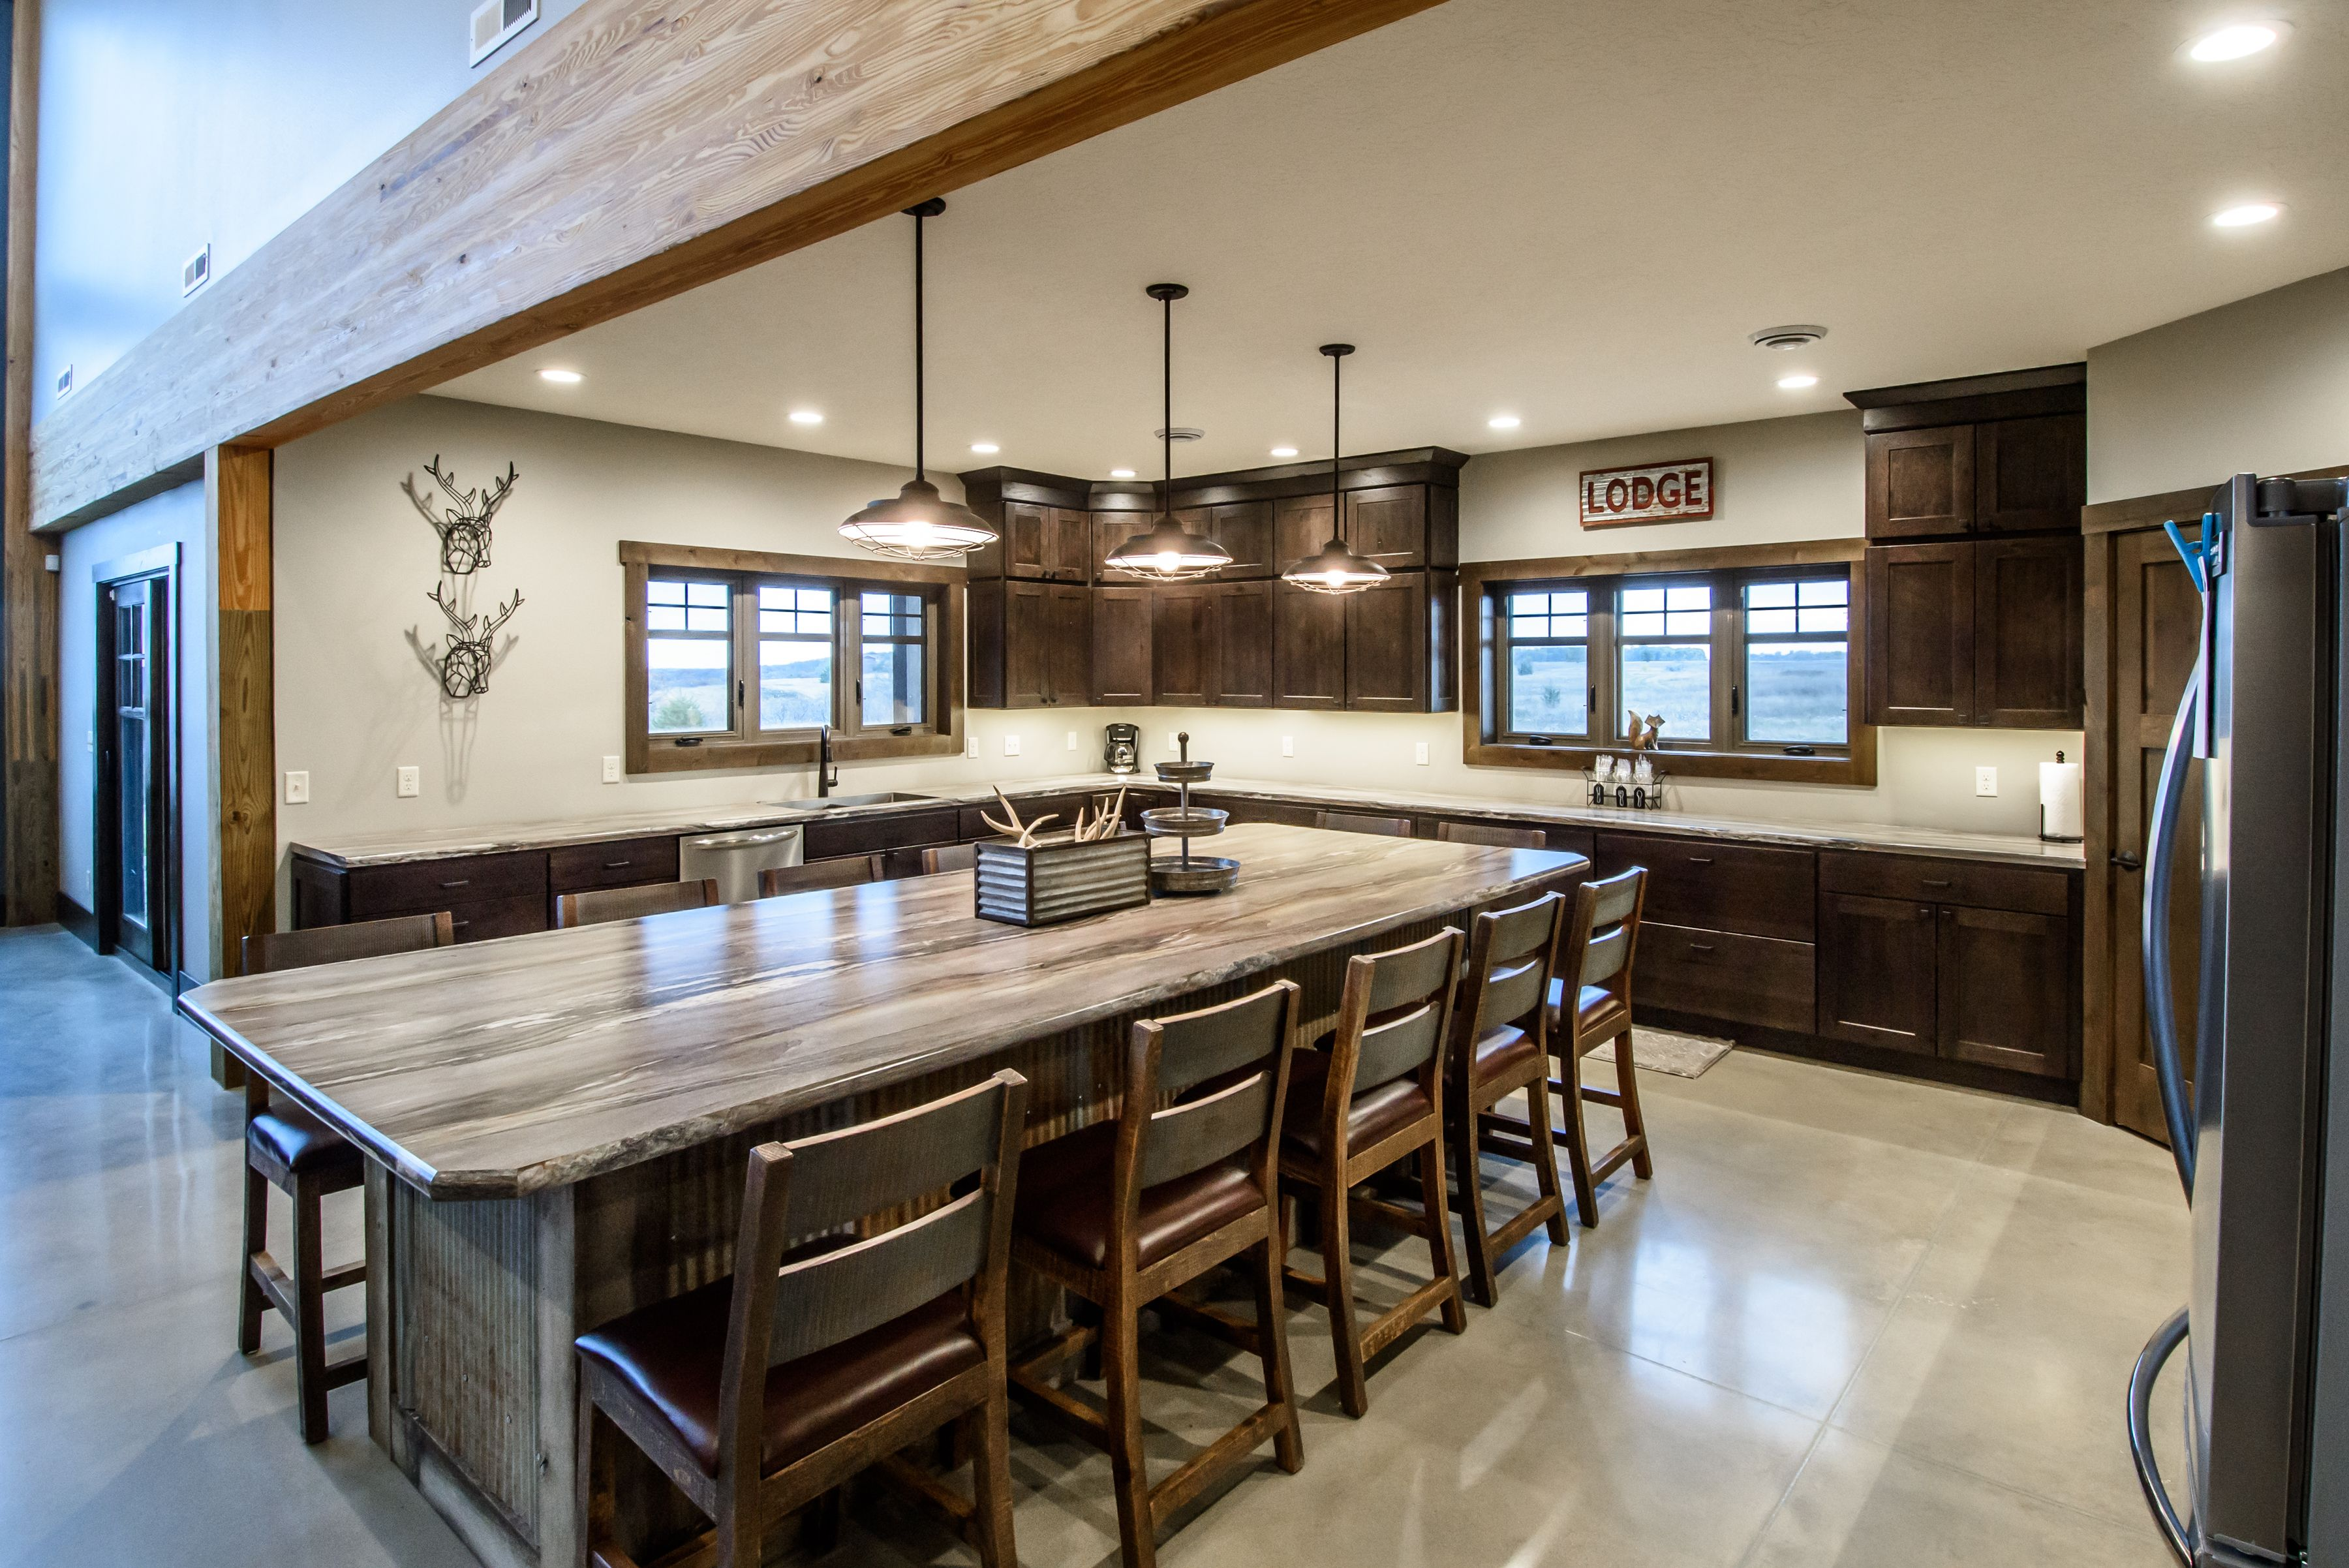 Ceiling Kitchen Style Island Wood Stunning Treatment Faux ...